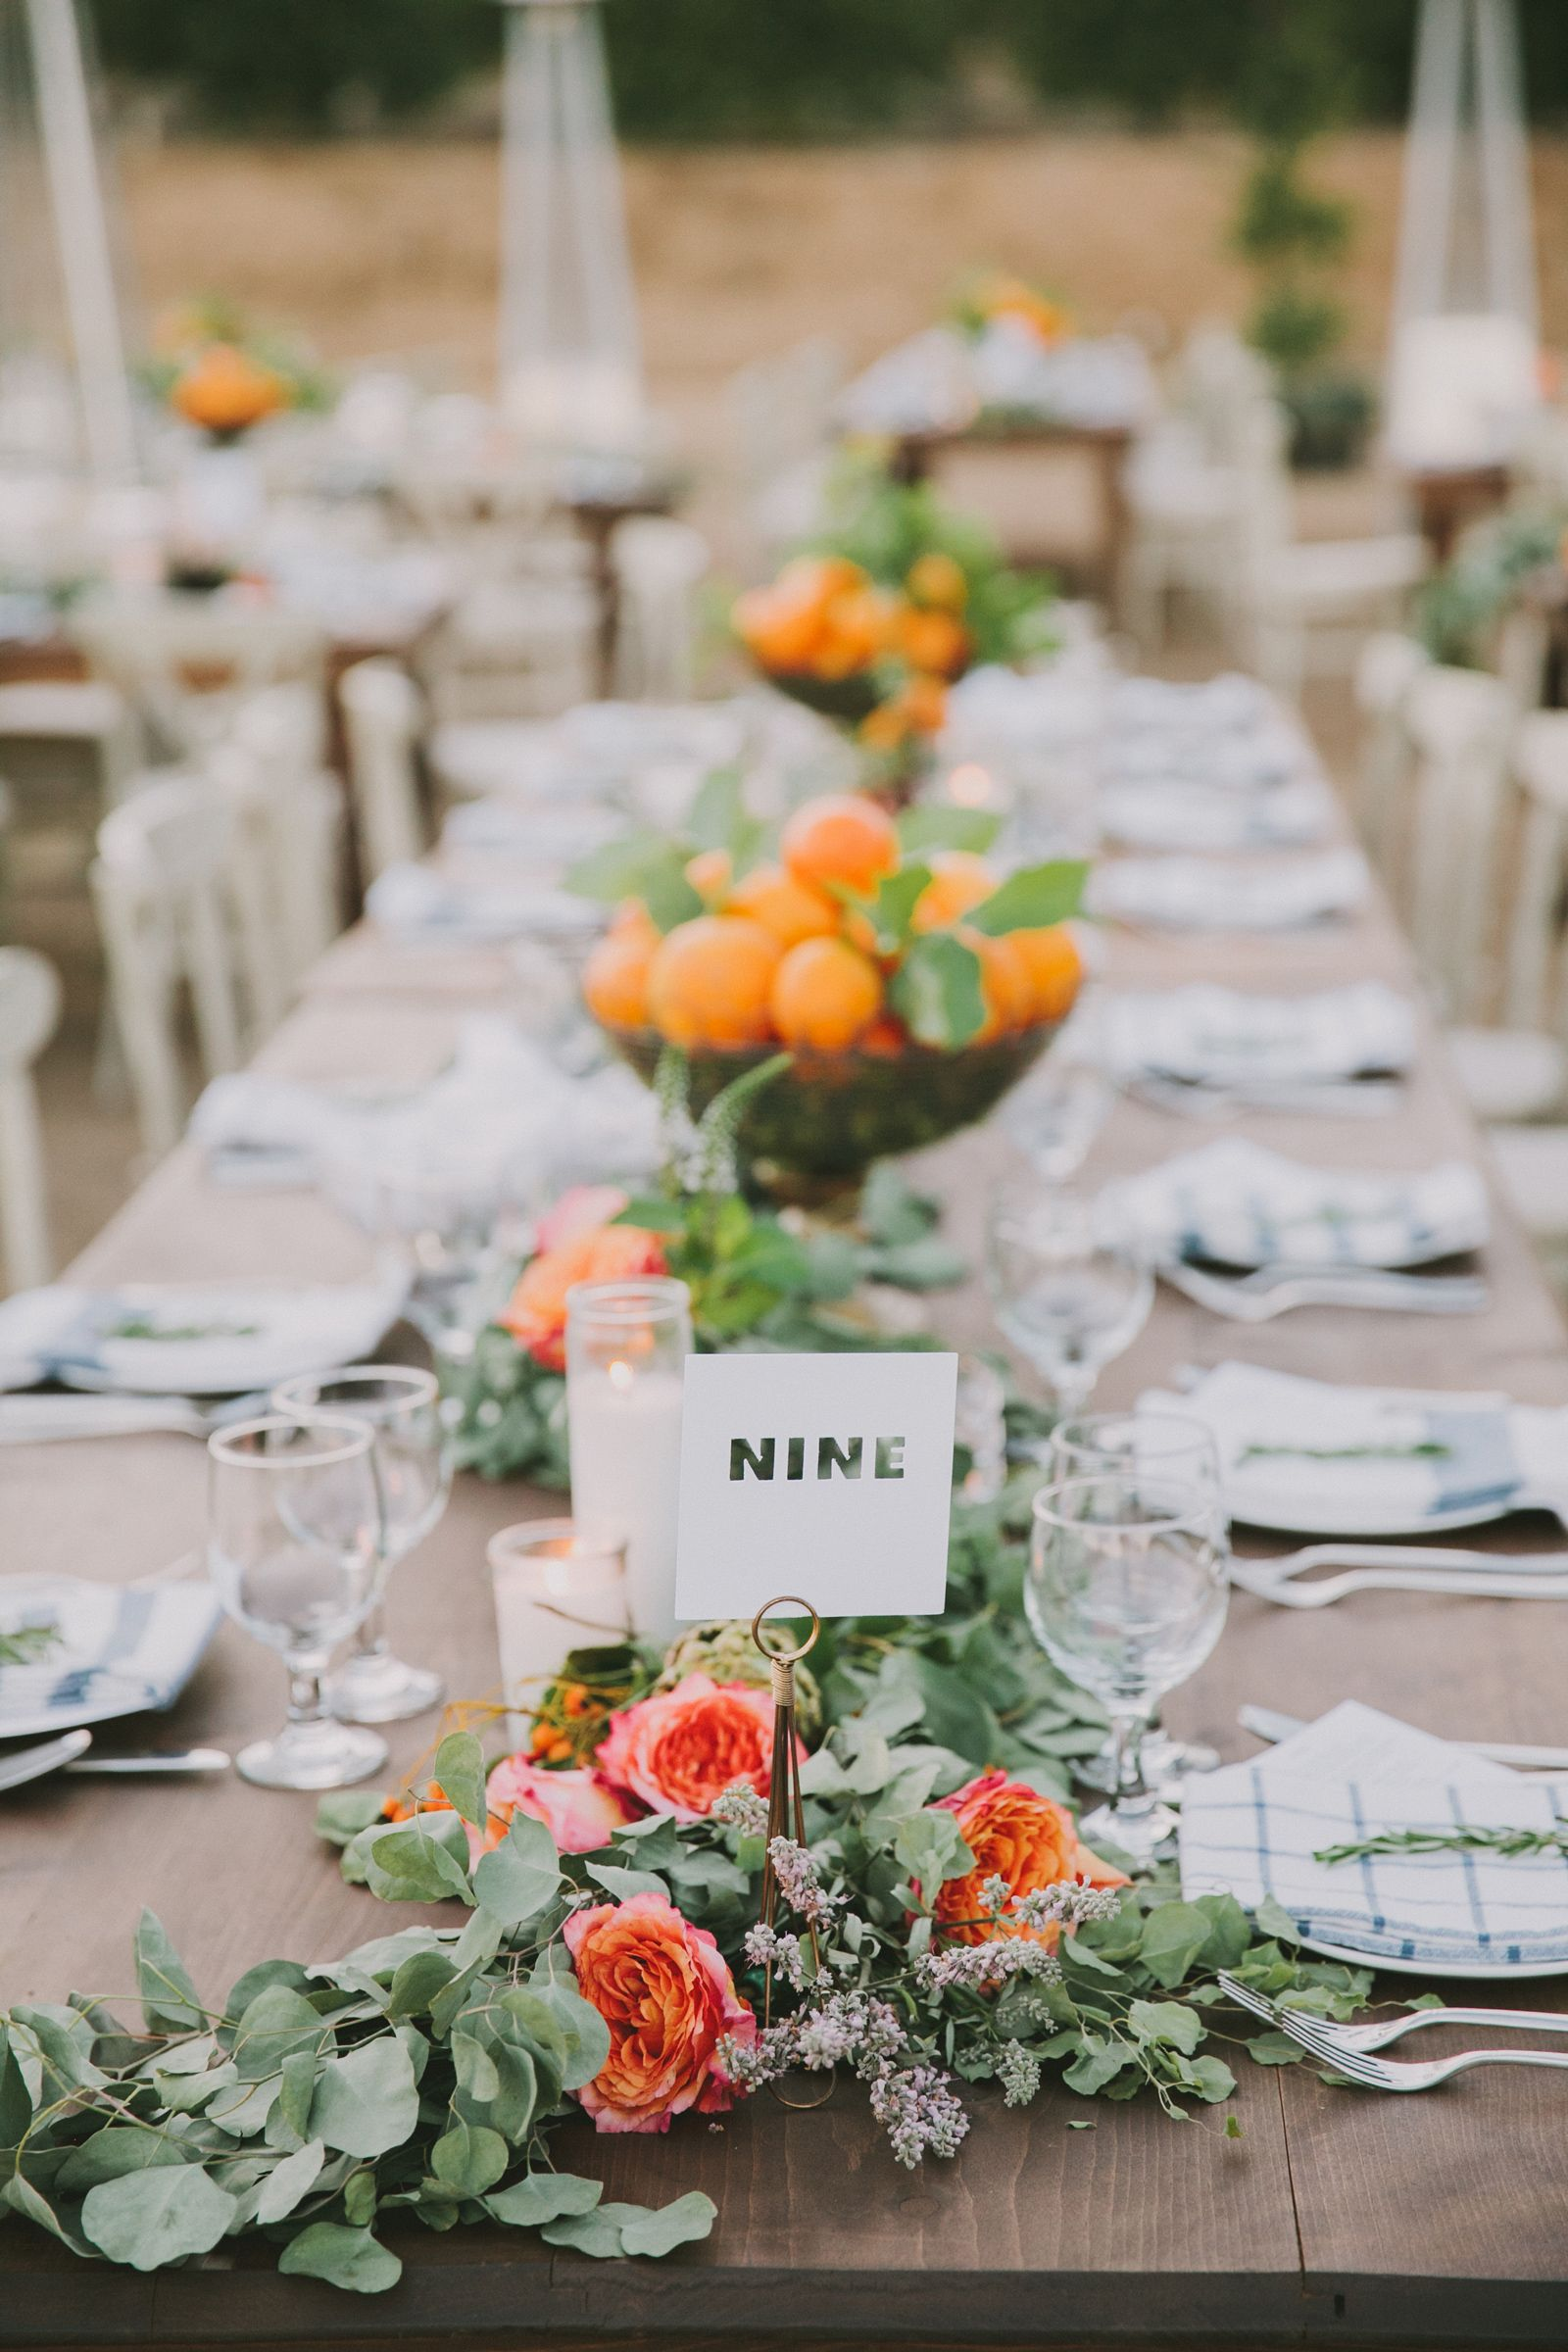 22 Wedding Centerpieces Bursting With Fruits And Vegetables With Images Fruit Wedding Fruit Centerpieces Wedding Citrus Wedding